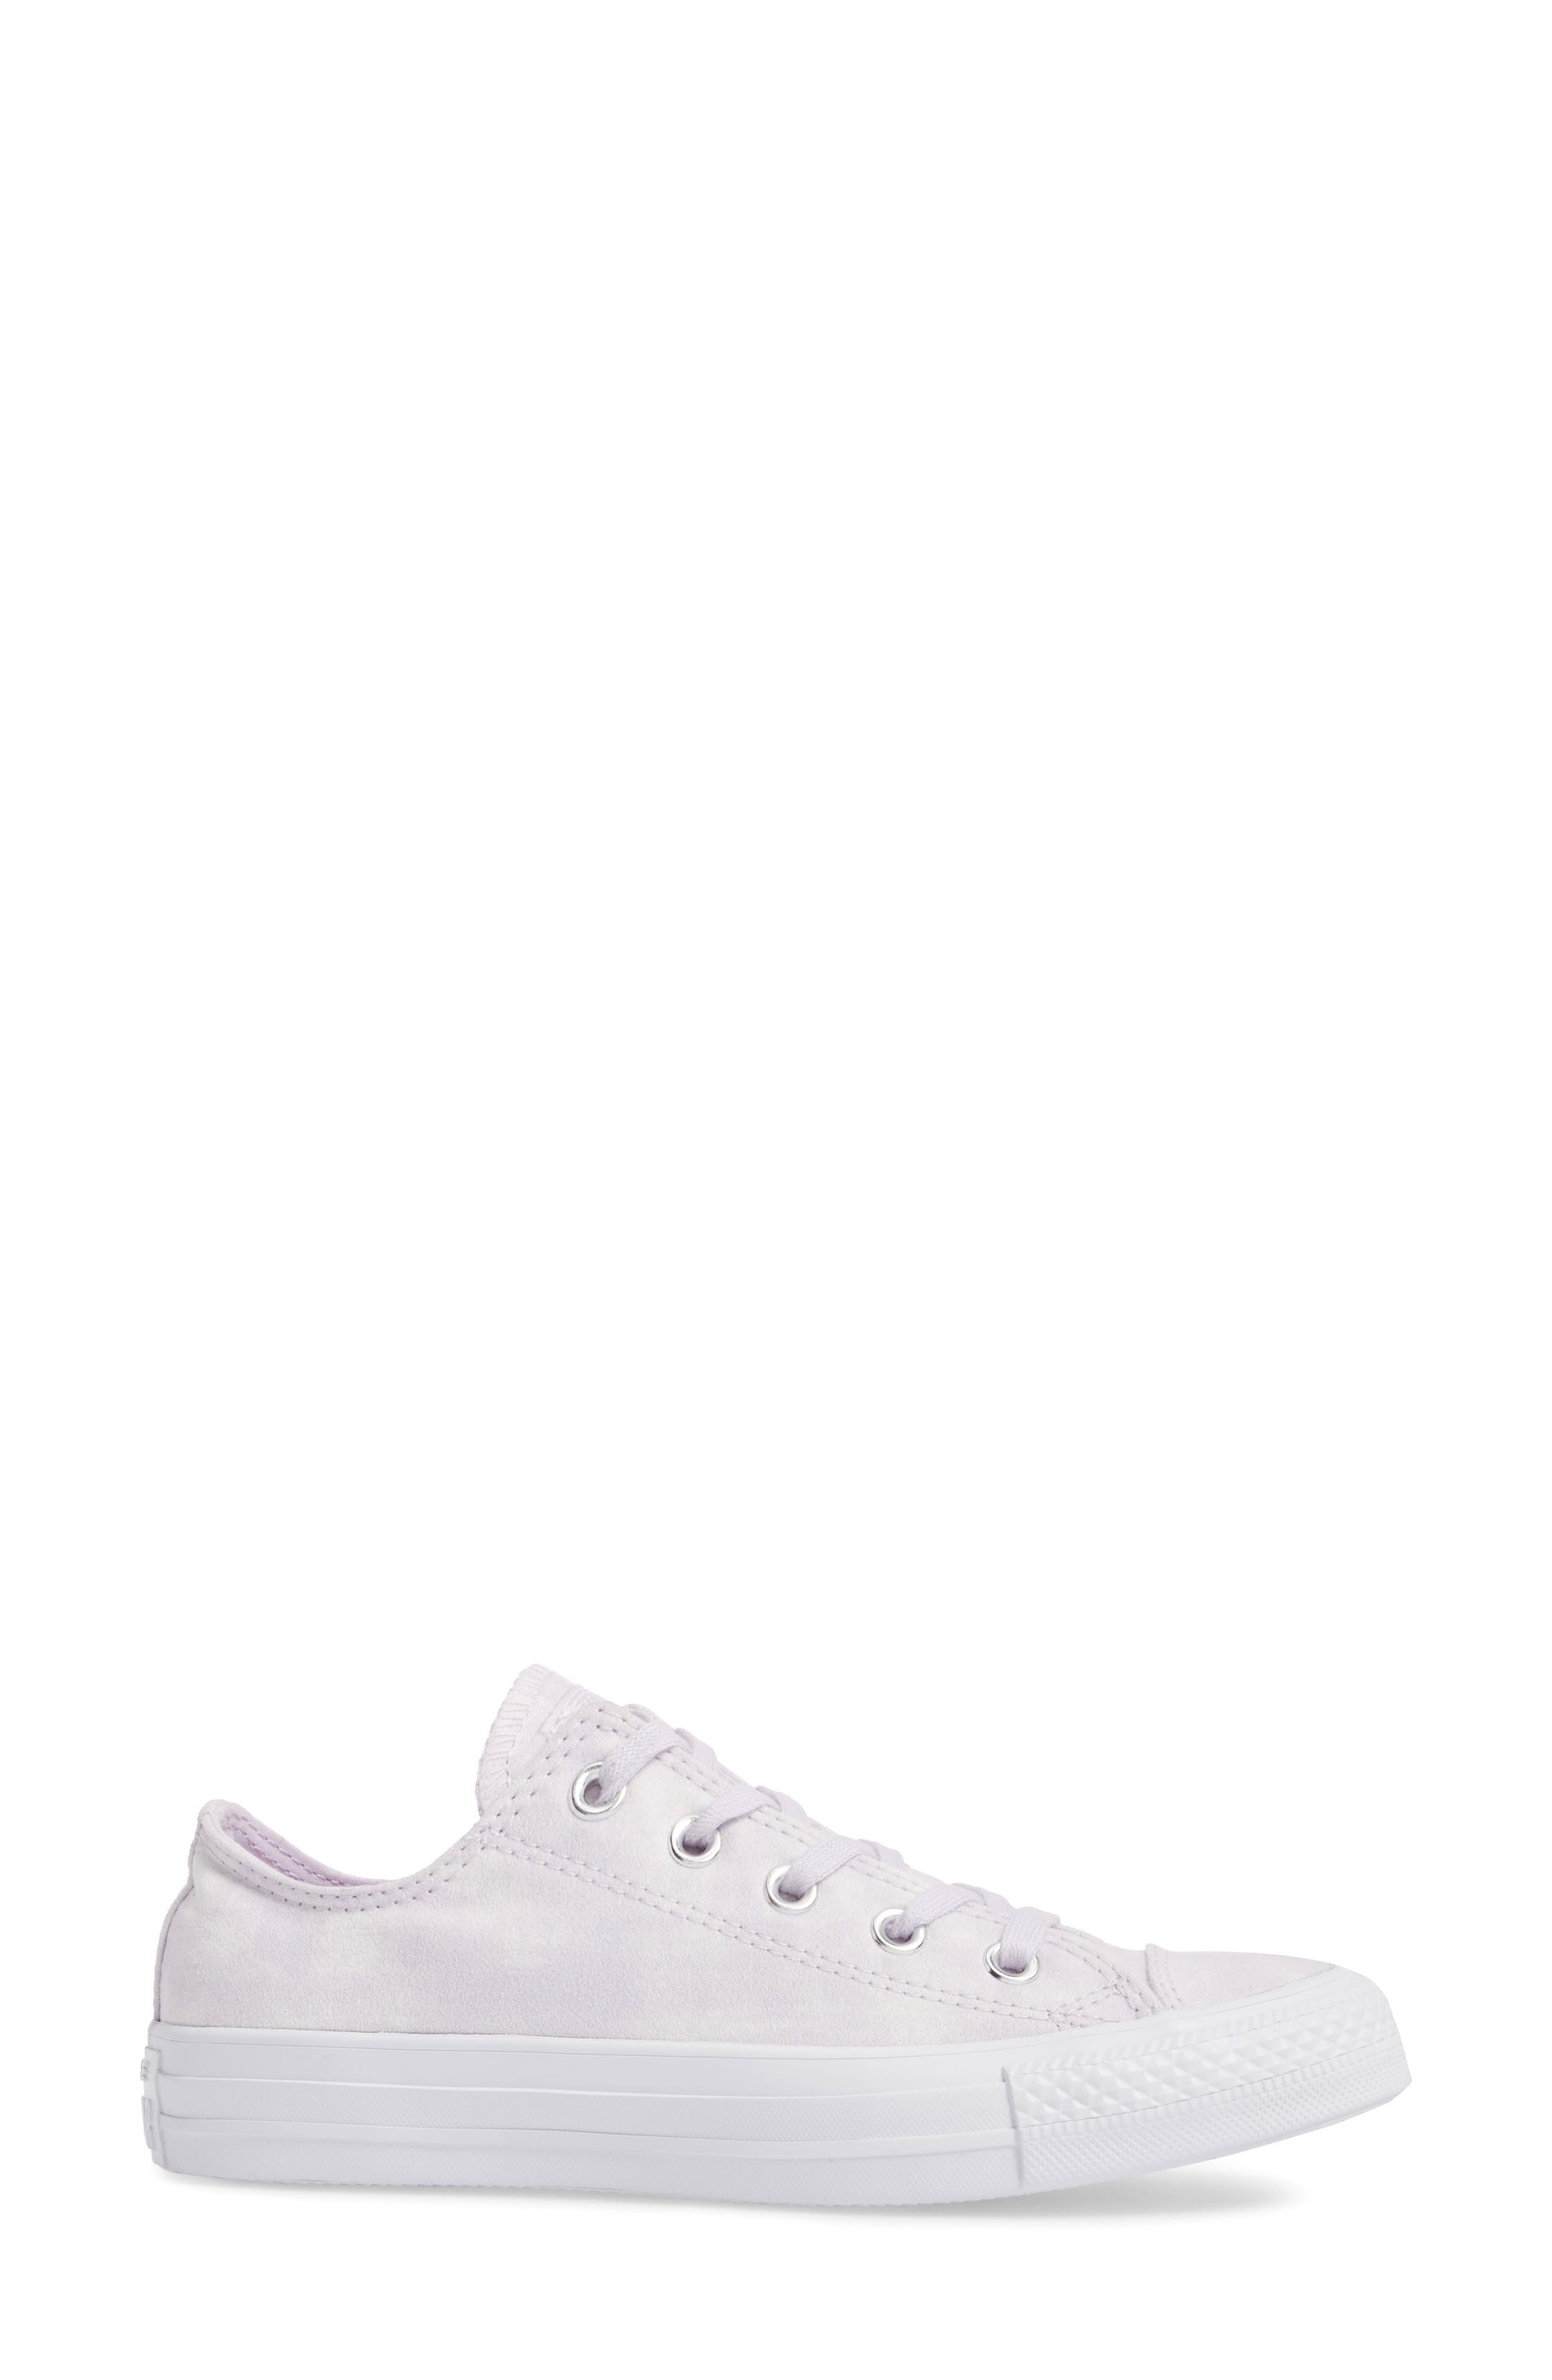 Chuck Taylor<sup>®</sup> All Star<sup>®</sup> Peached Low Top Sneaker,                             Alternate thumbnail 6, color,